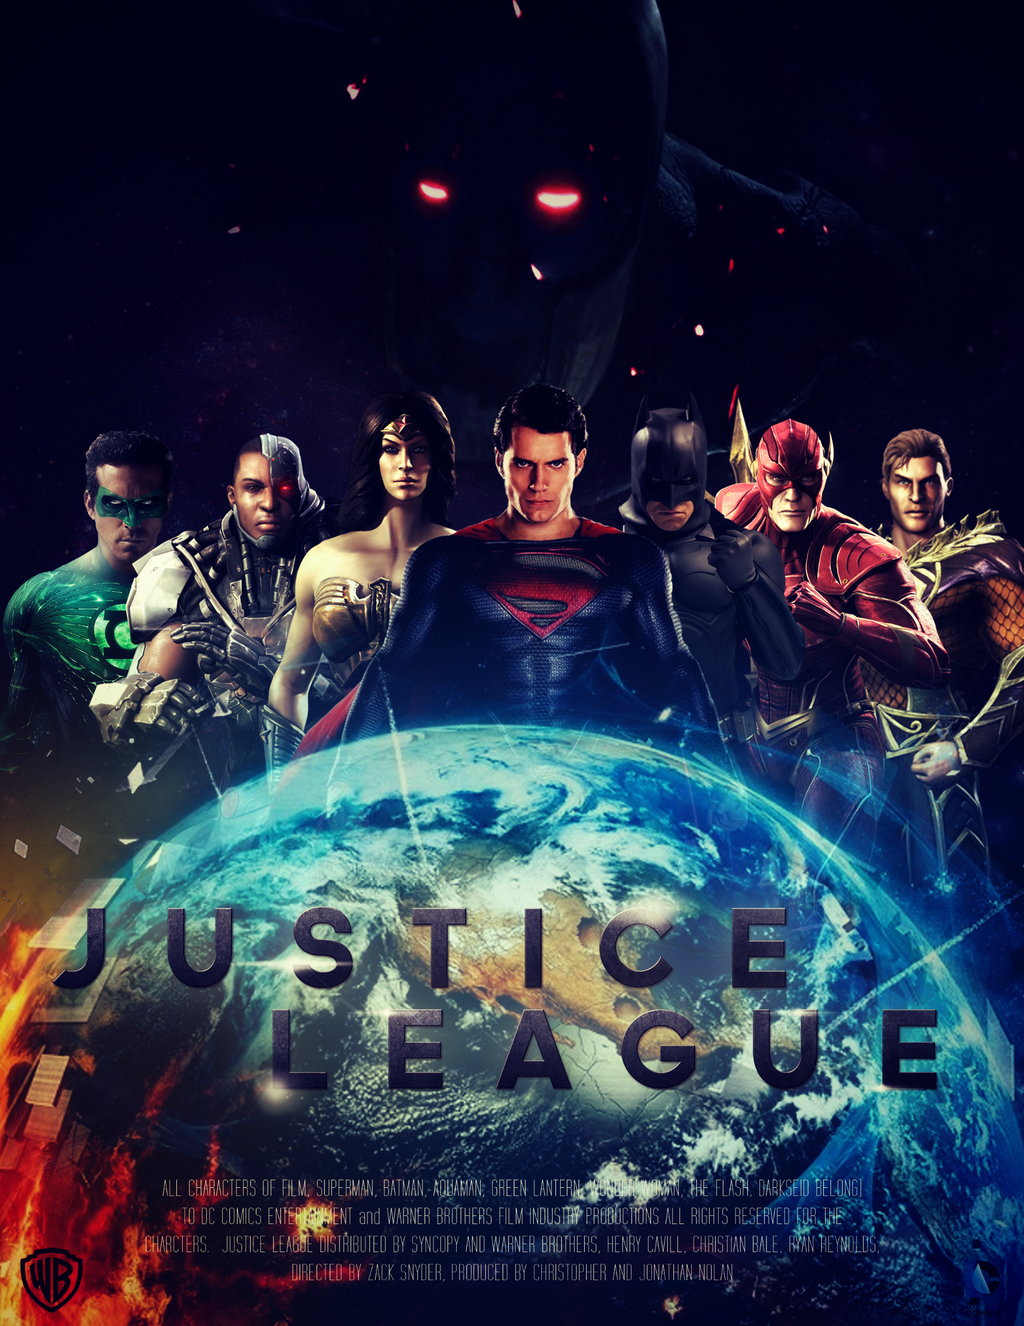 JUSTICE LEAGUE - Poster II by MrSteiners on DeviantArt